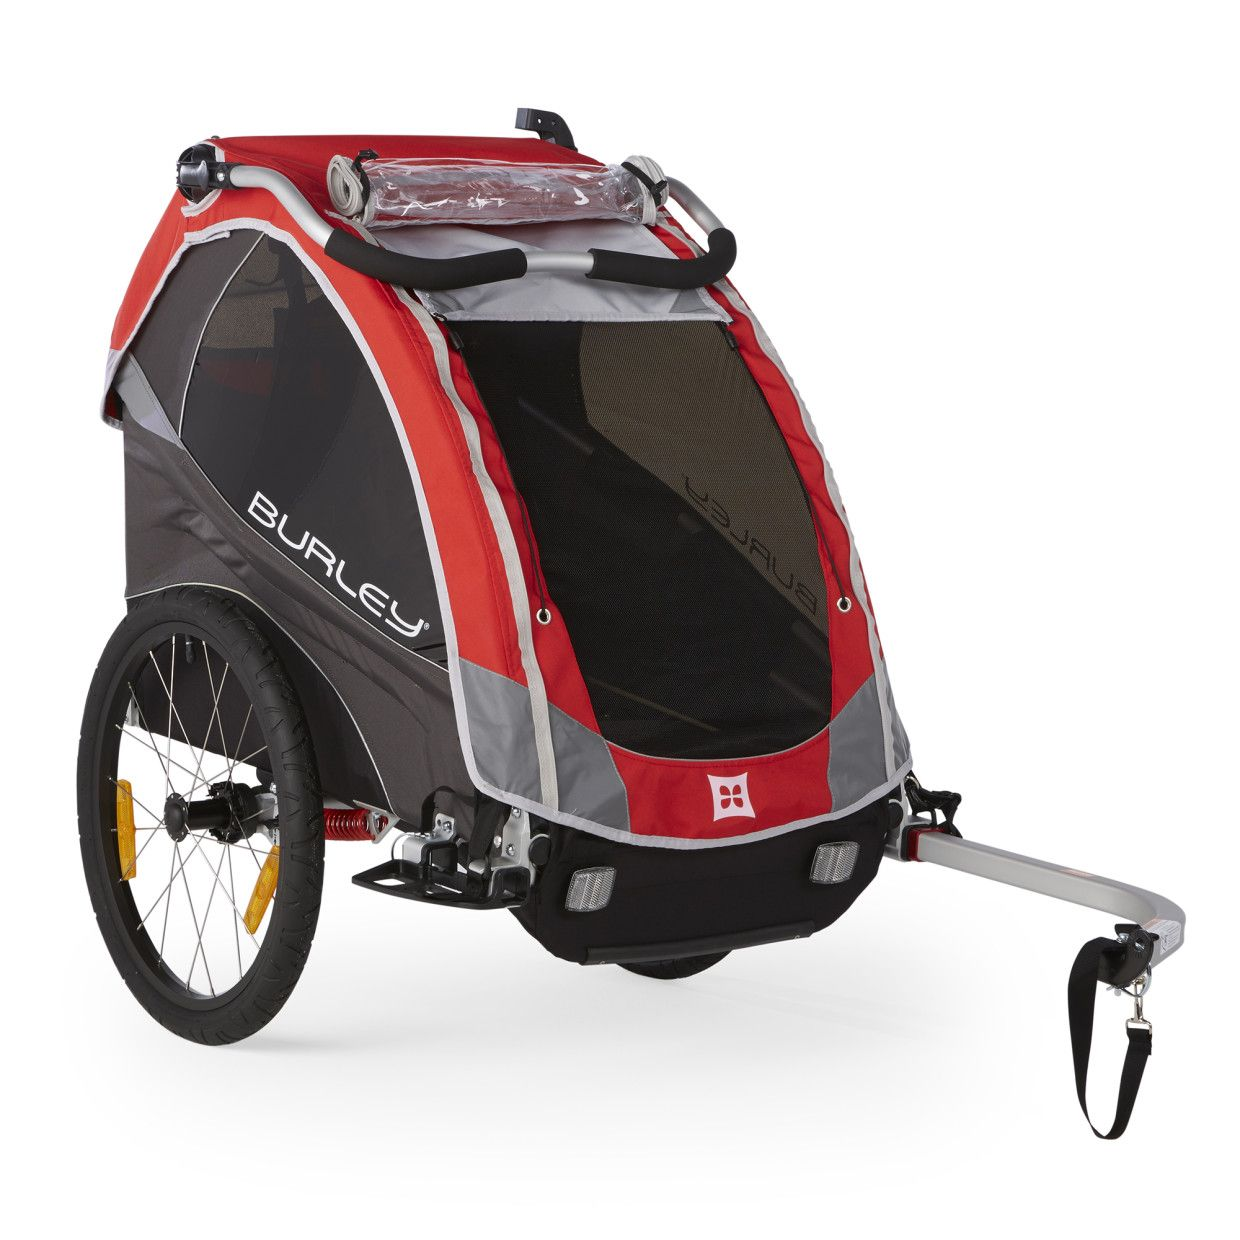 Bike Trailer For Kids Burley Design Child Bike Trailer Bike Trailer Bicycle Trailer